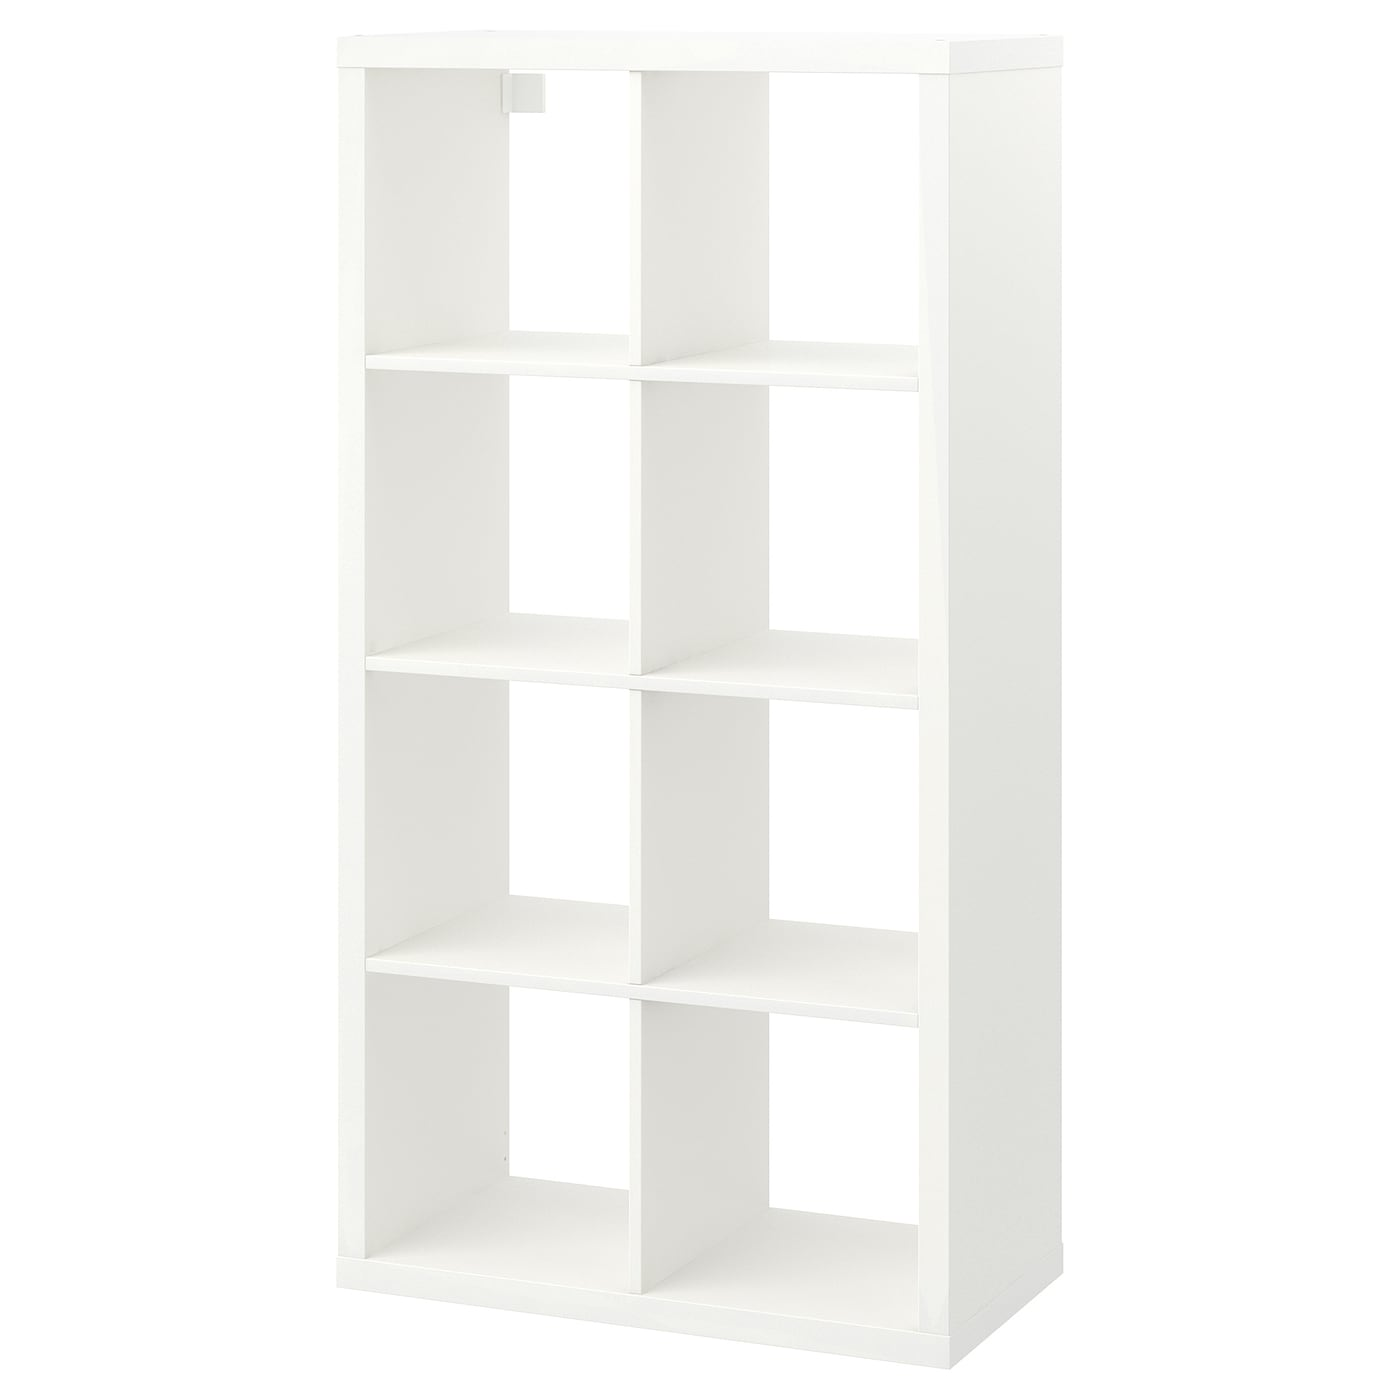 Estanter as modulares y estanterias de madera compra for Mueble libreria ikea